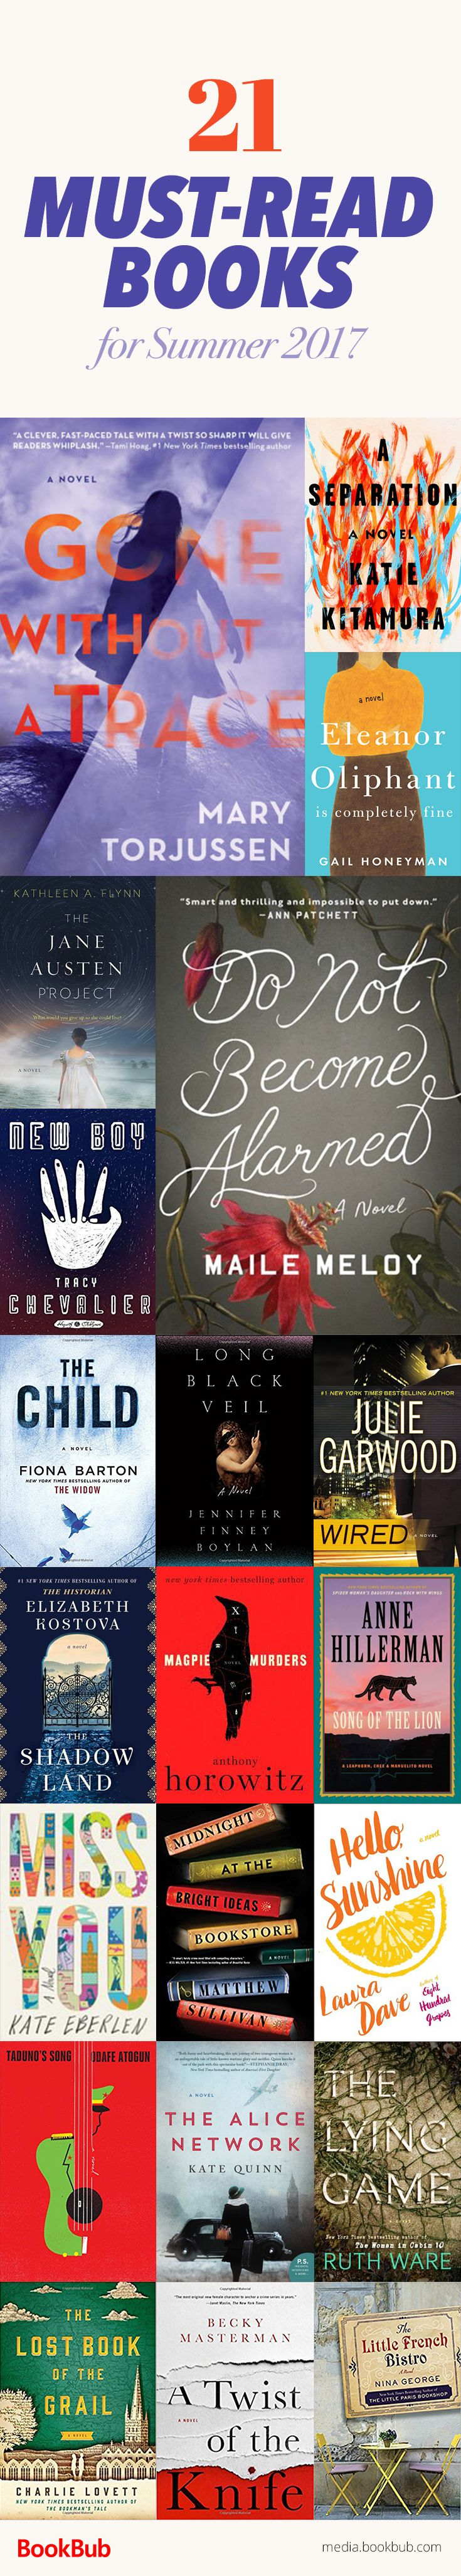 21 Summer Books Recommended By Librarians